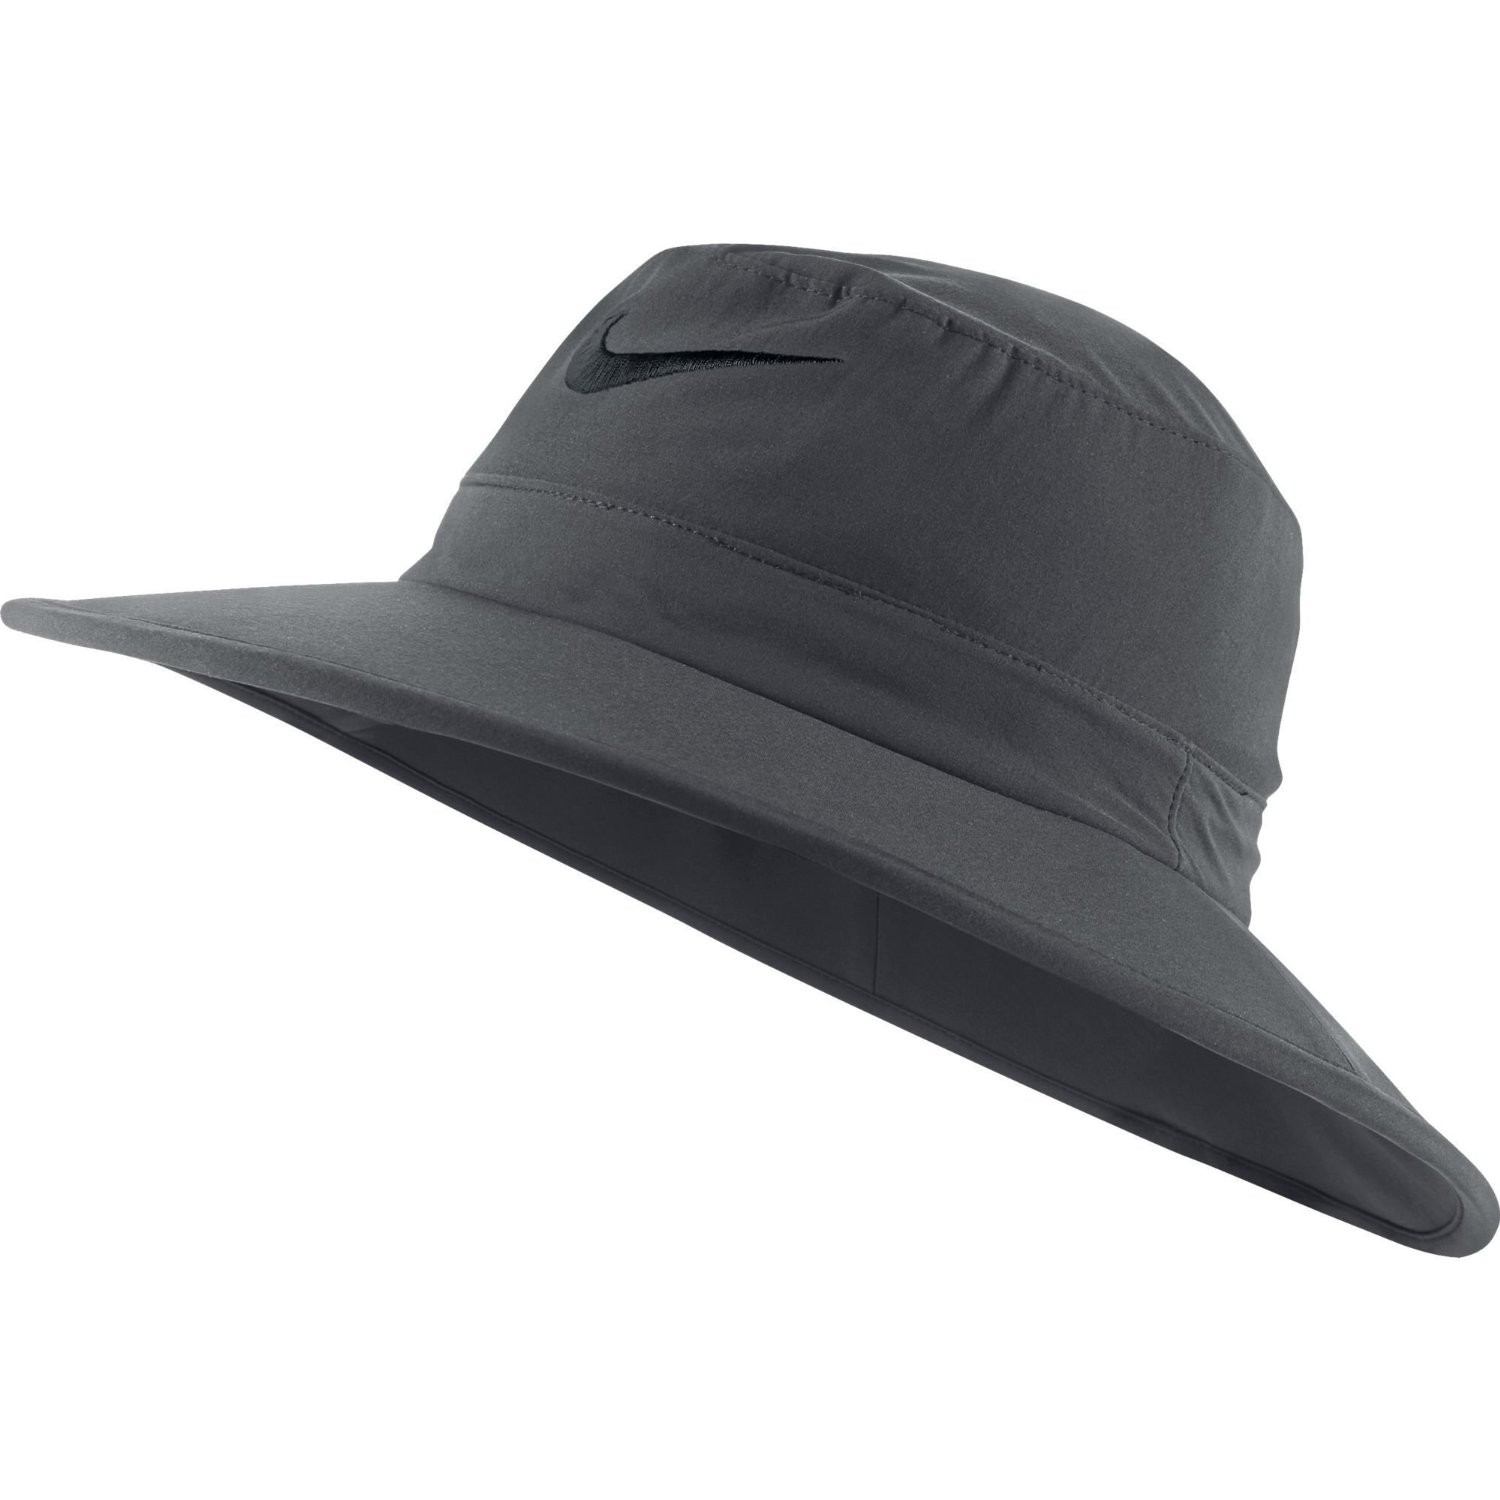 8a8ca90ff4c Get Quotations · NEW Nike Sun Bucket Hat Dark Gray Black Fitted M L Fitted  Hat